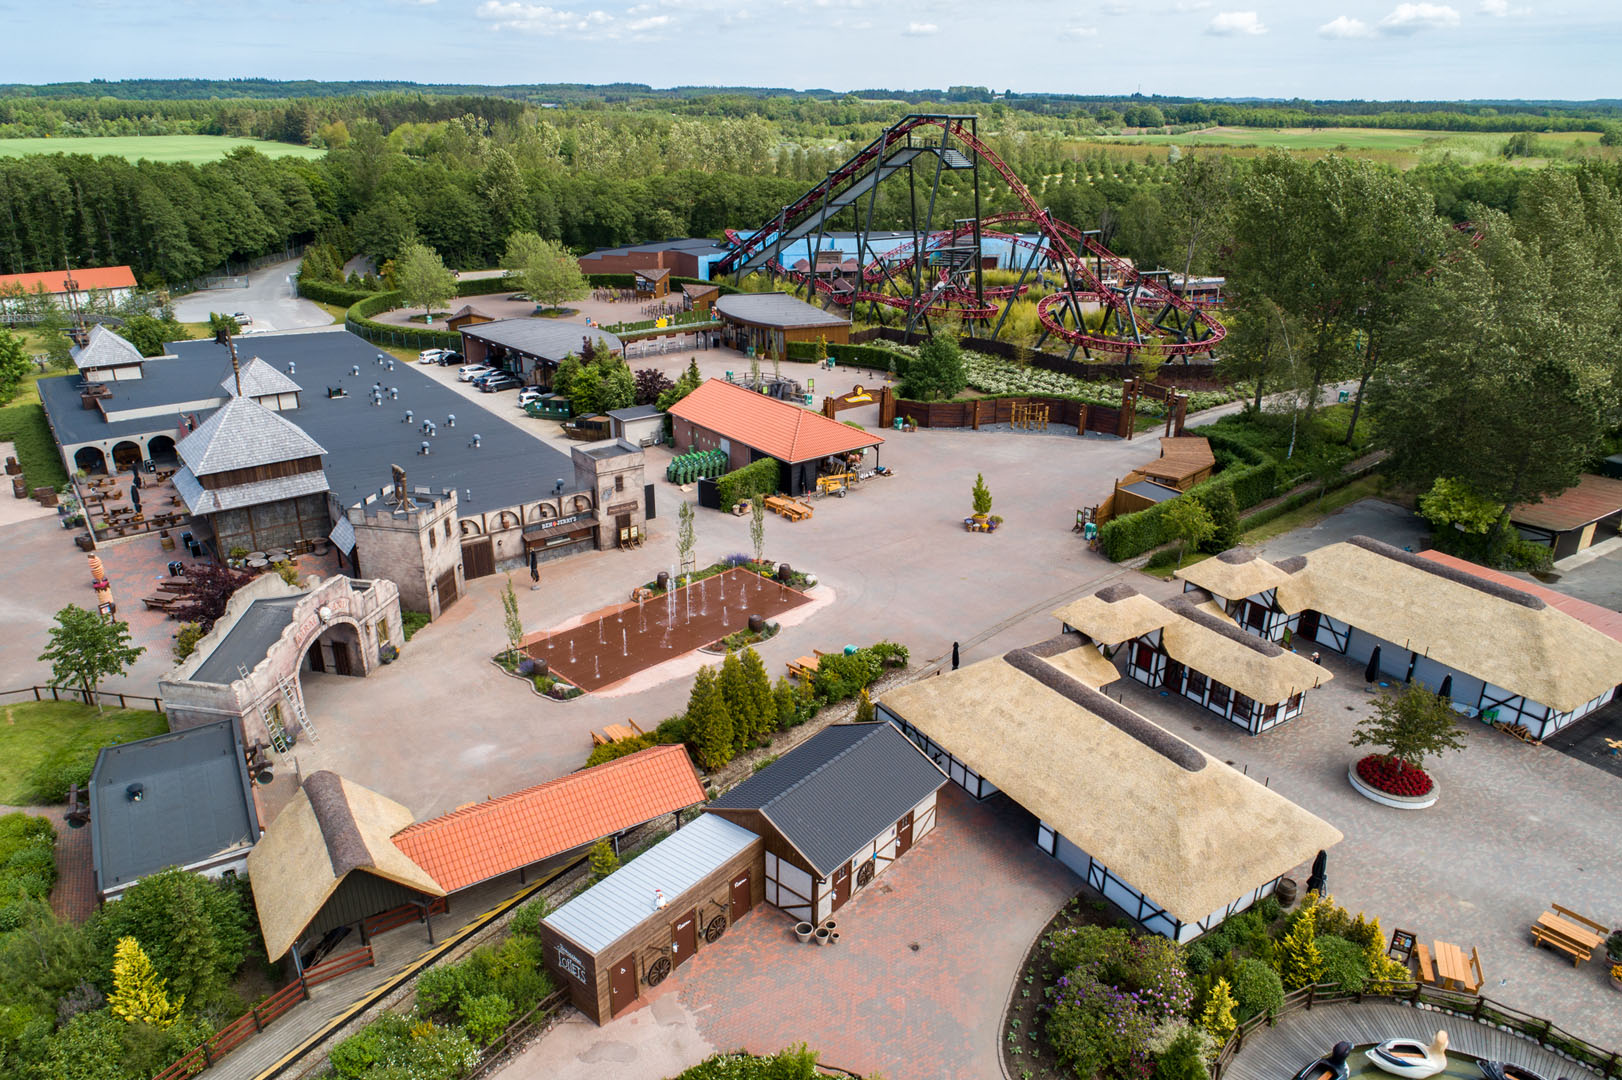 An overview of the signage at the Wild Asia Area at Djurs Sommerland